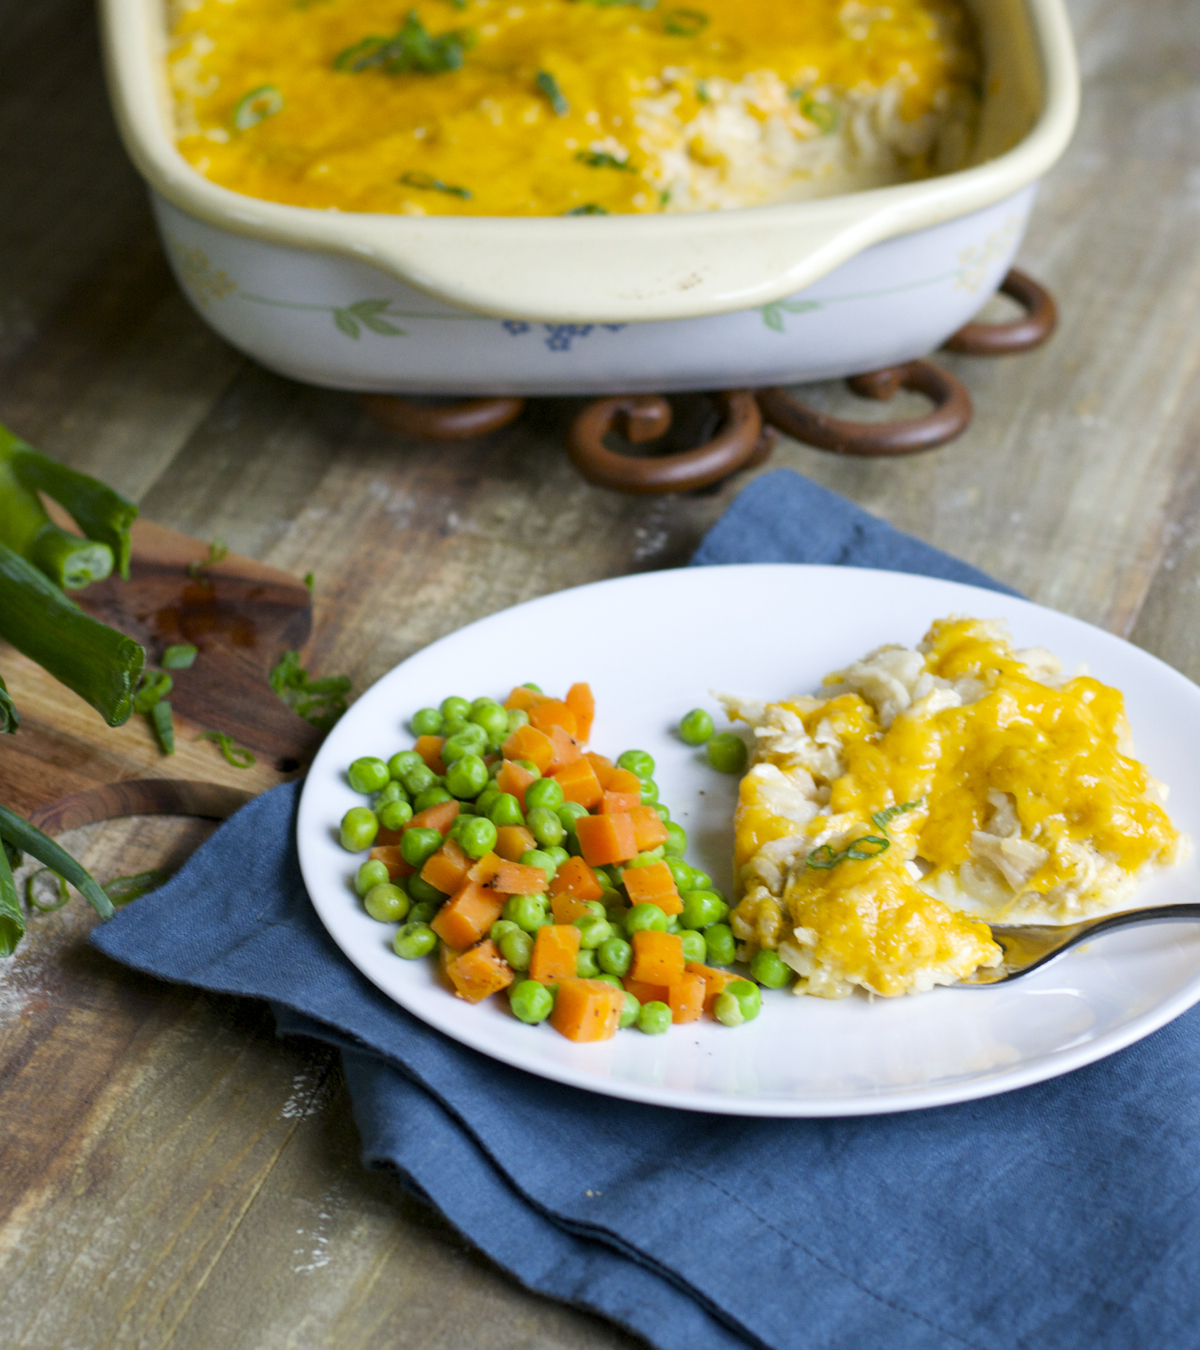 serving of cheesy chicken and rice casserole on a white plate with mixed peas and carrots. A baking dish of casserole rests in the background.